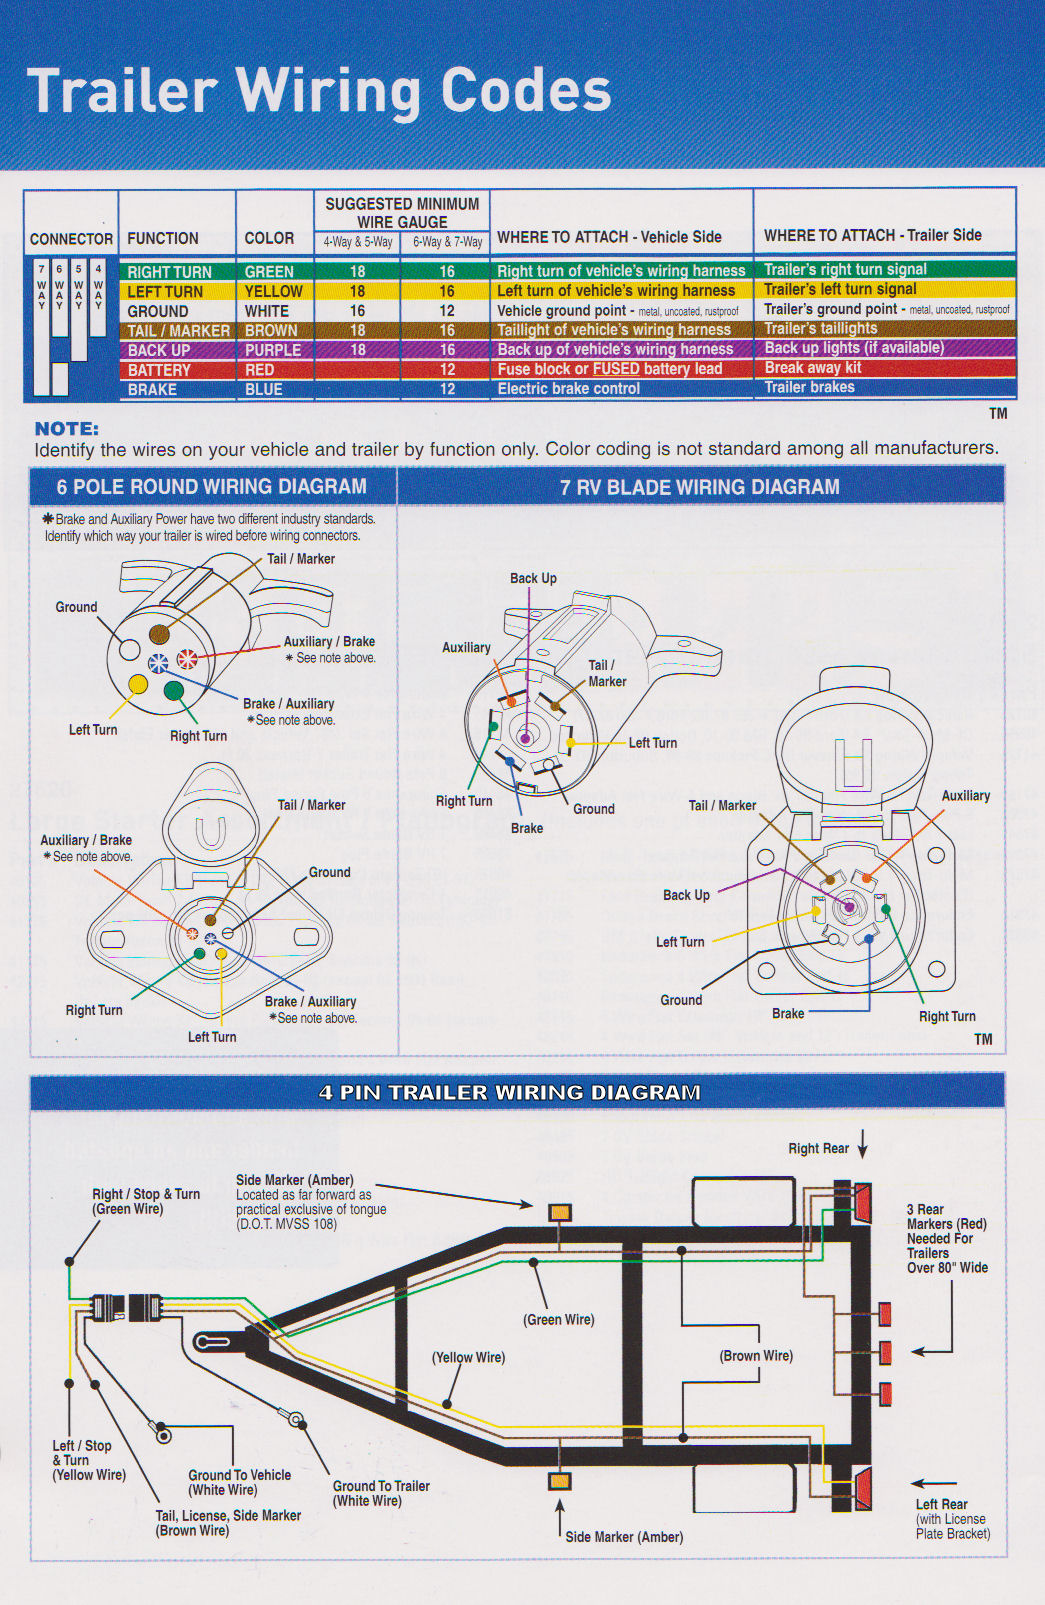 Trailer Wiring Diagram trailer wiring diagram we are the trailer pros! simple trailer wiring diagram at bayanpartner.co